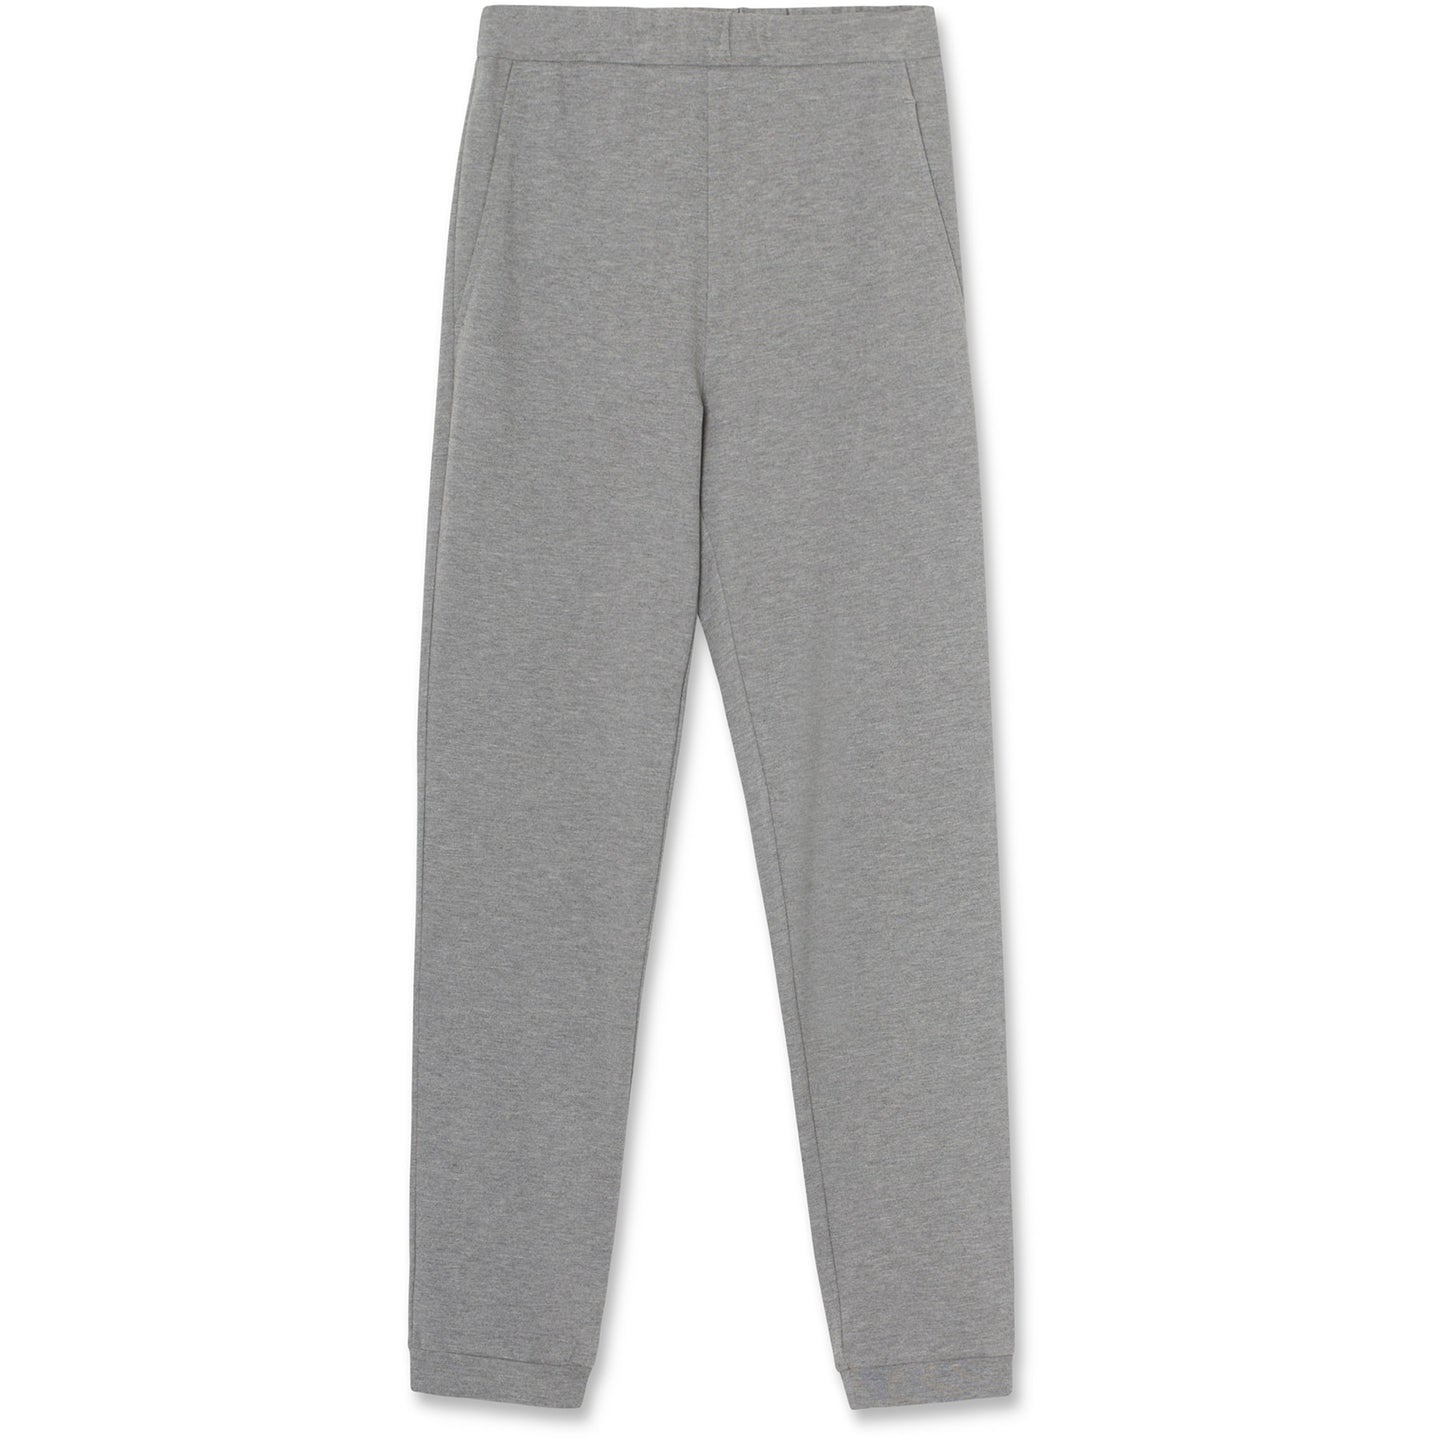 Viola Pants - Japanese Jersey - Med. Grey